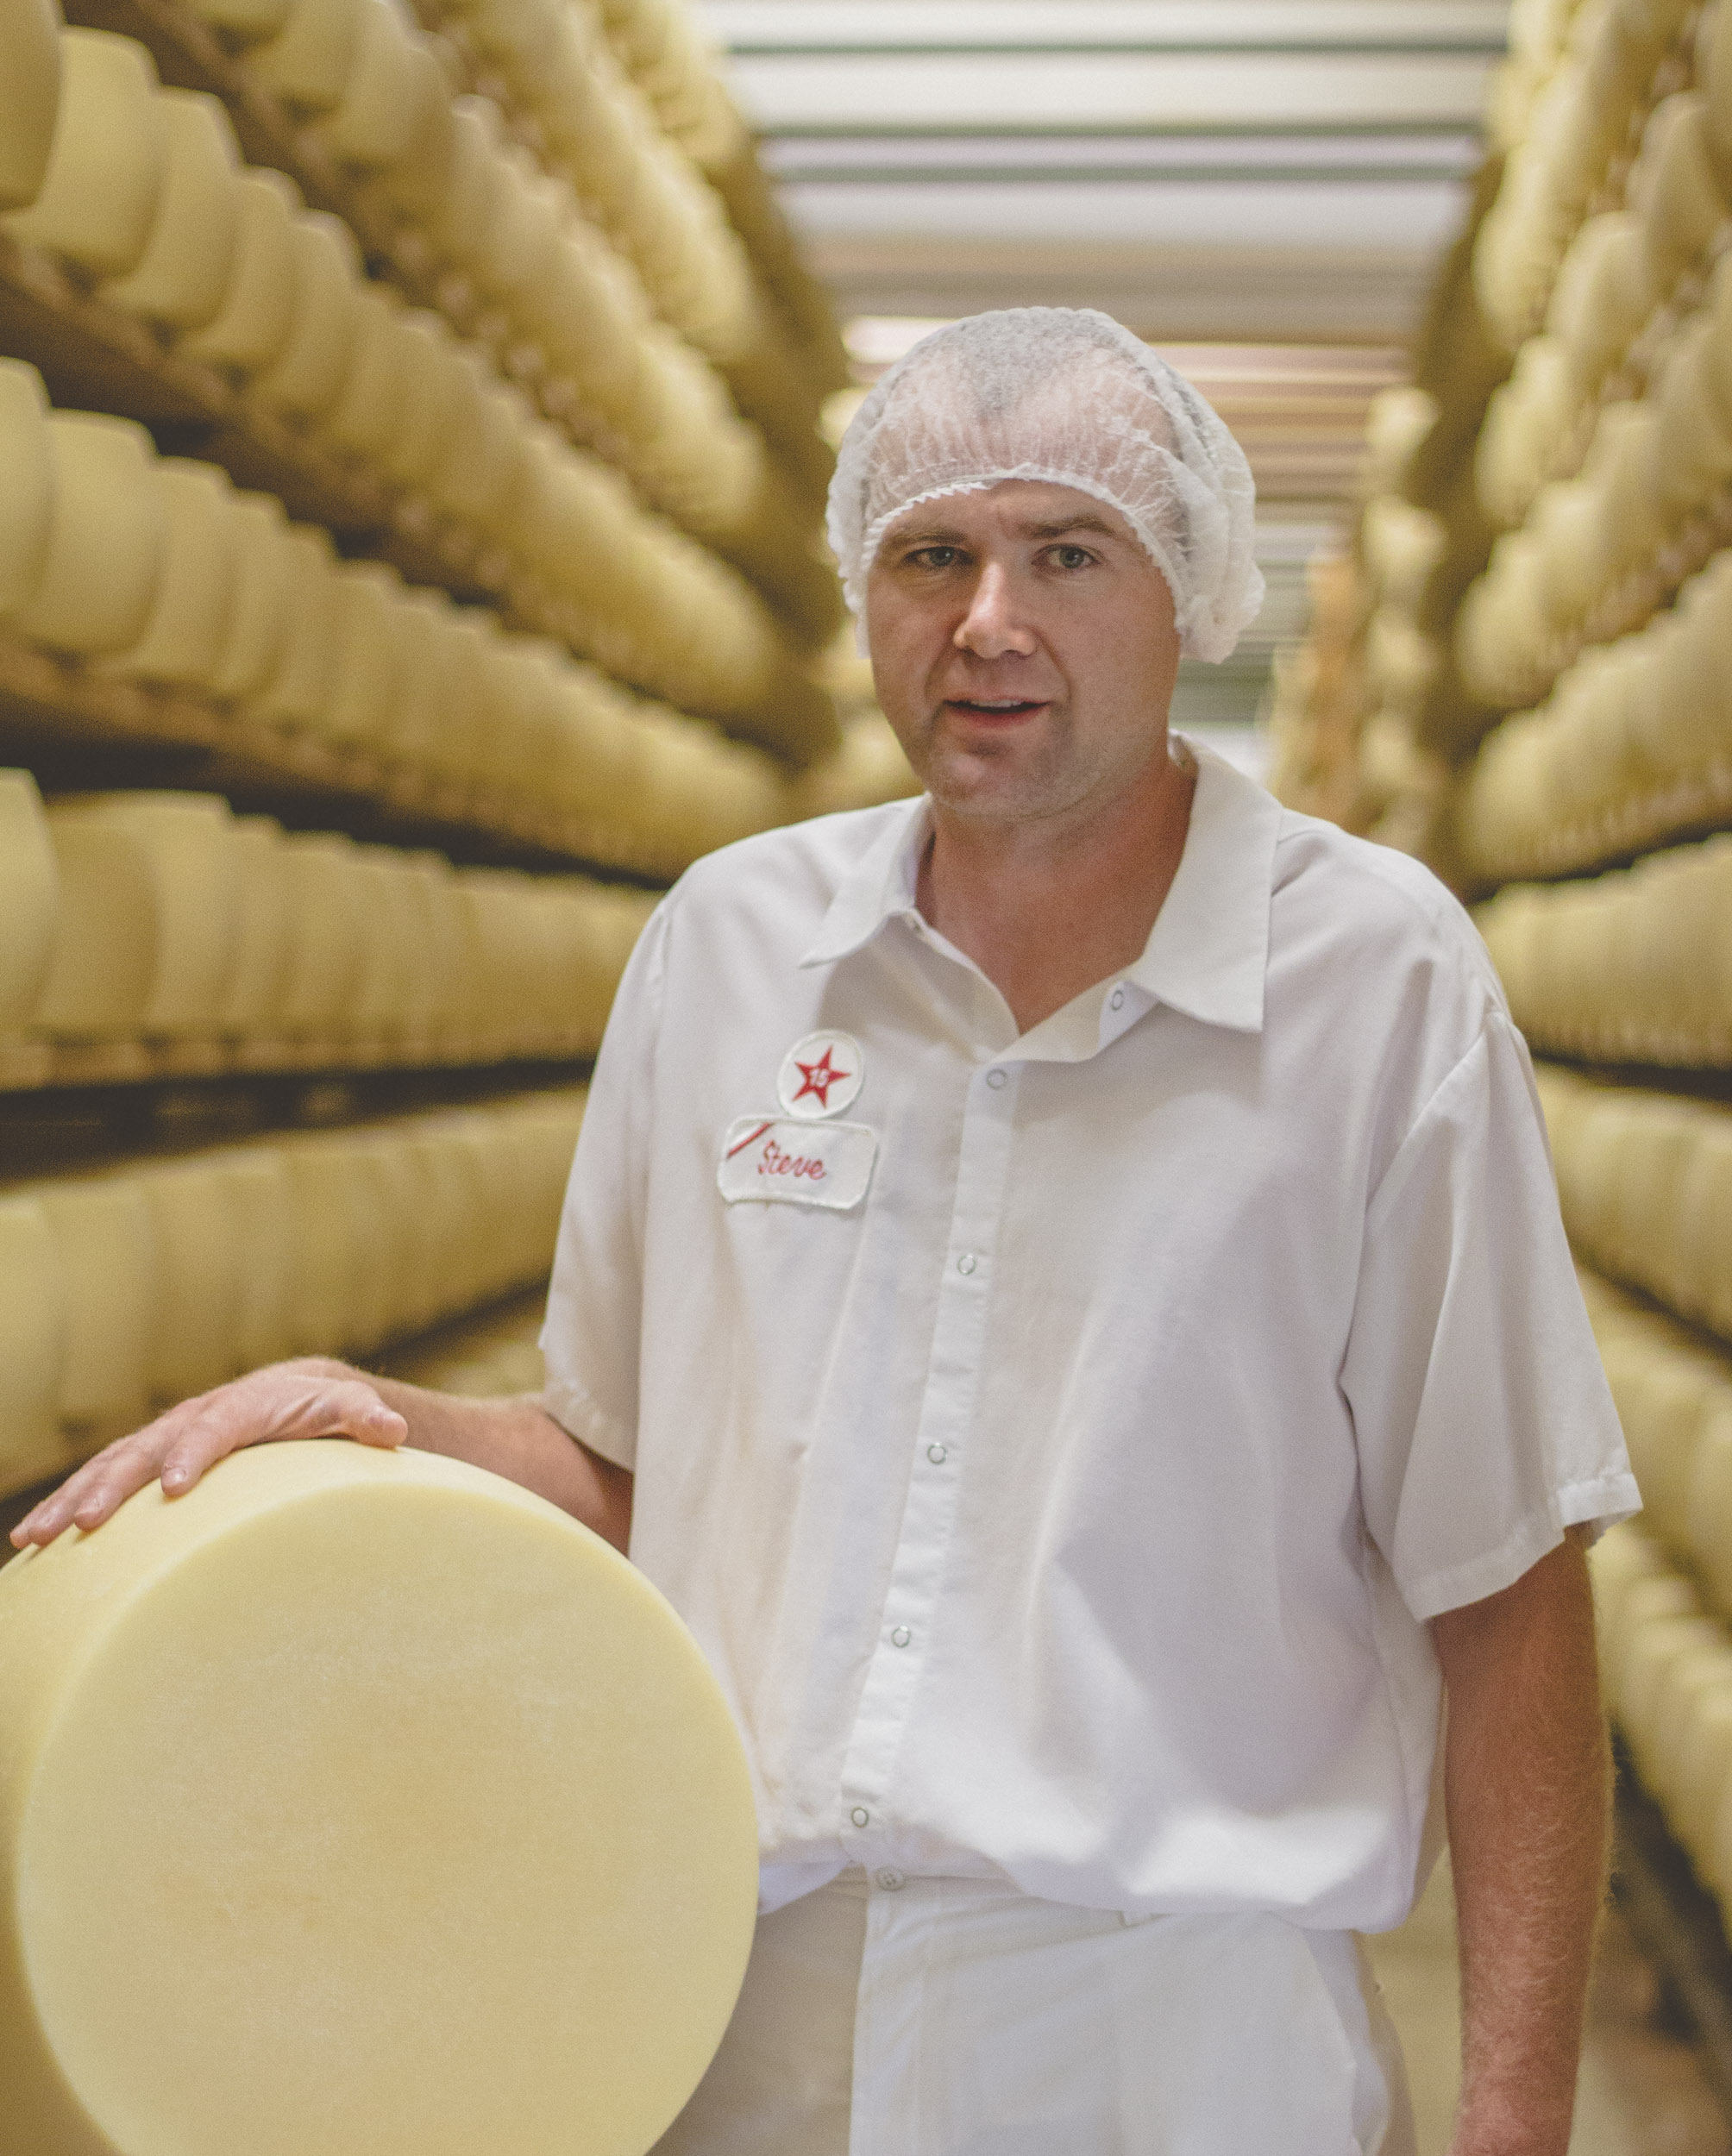 *Steve Bierhals has received countless awards for his American Grana including several First Place, Best of Class medals at International Cheese competitions.